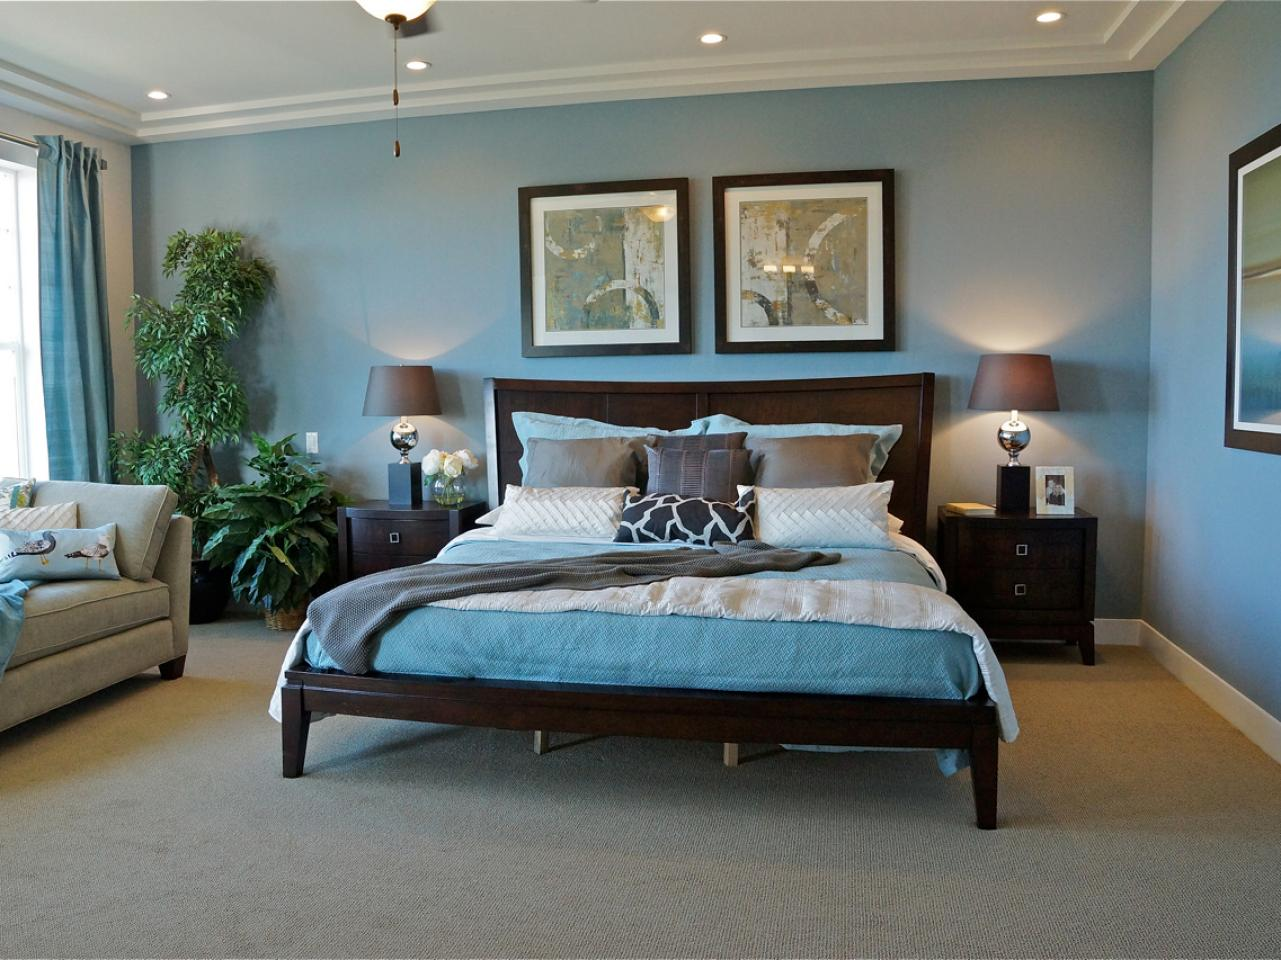 Photos hgtv Blue and tan bedroom decorating ideas